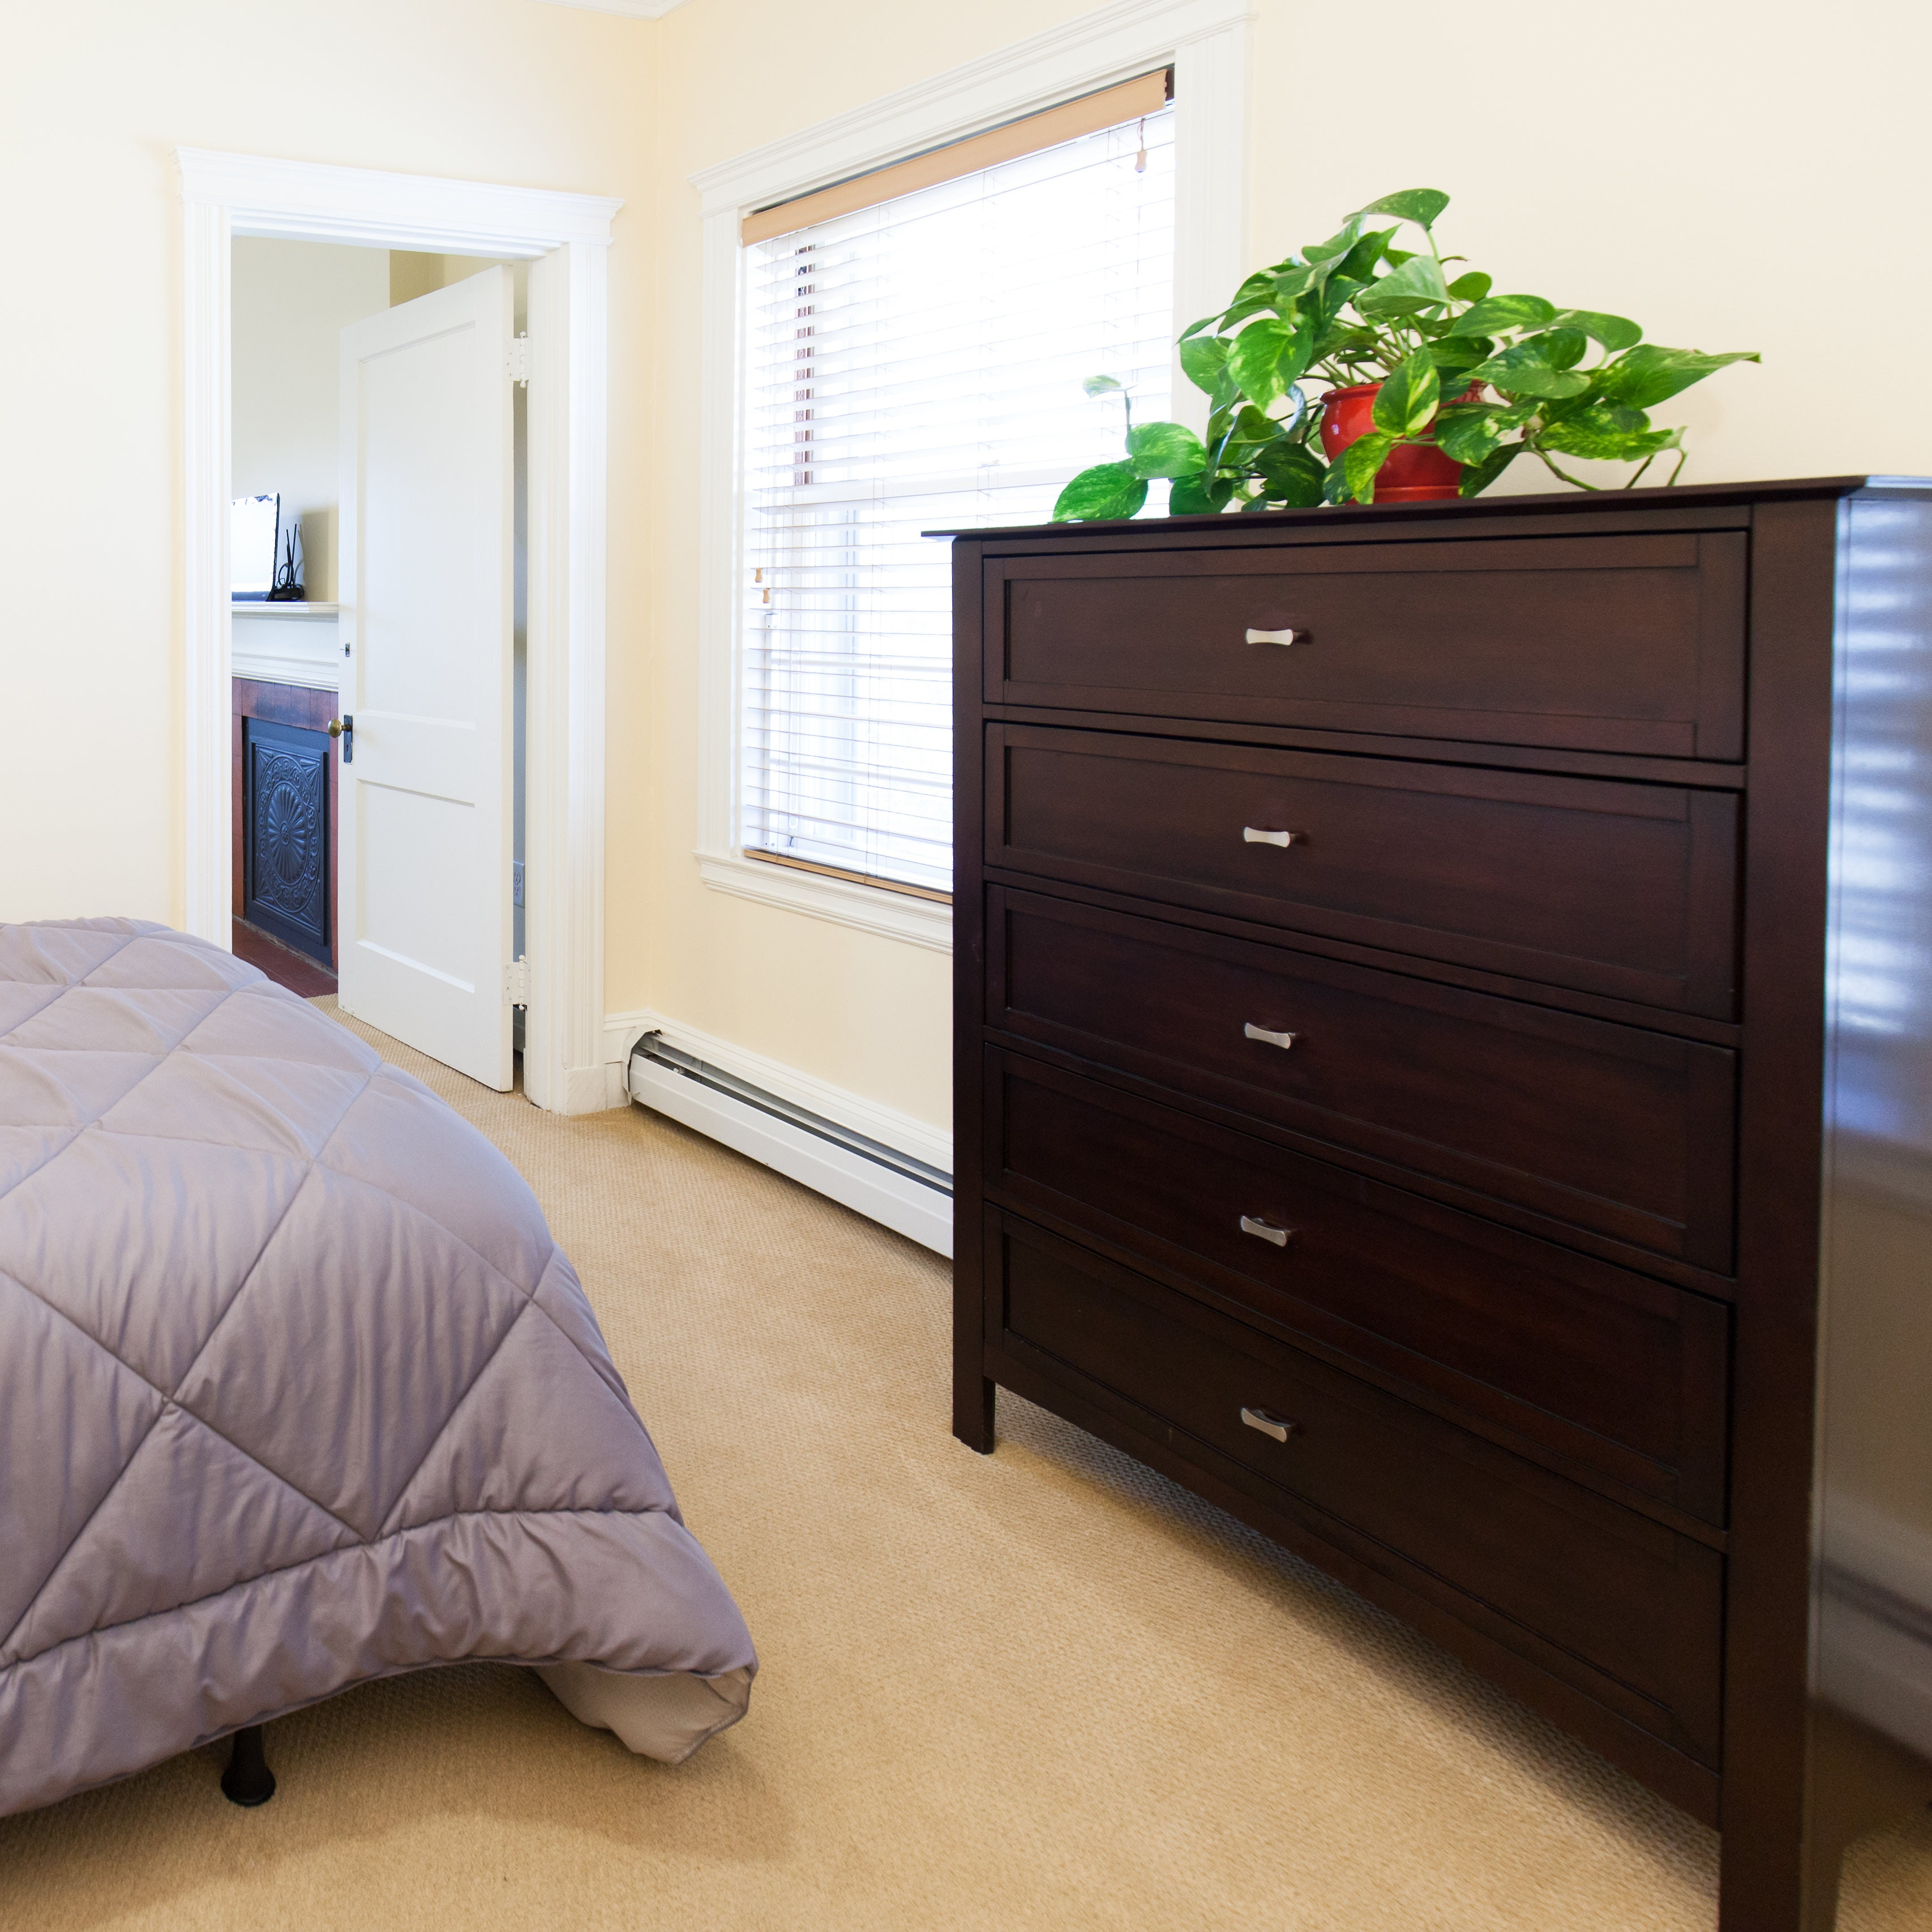 Second bedroom with furnishings in 83 Brattle Street two bedroom apartment